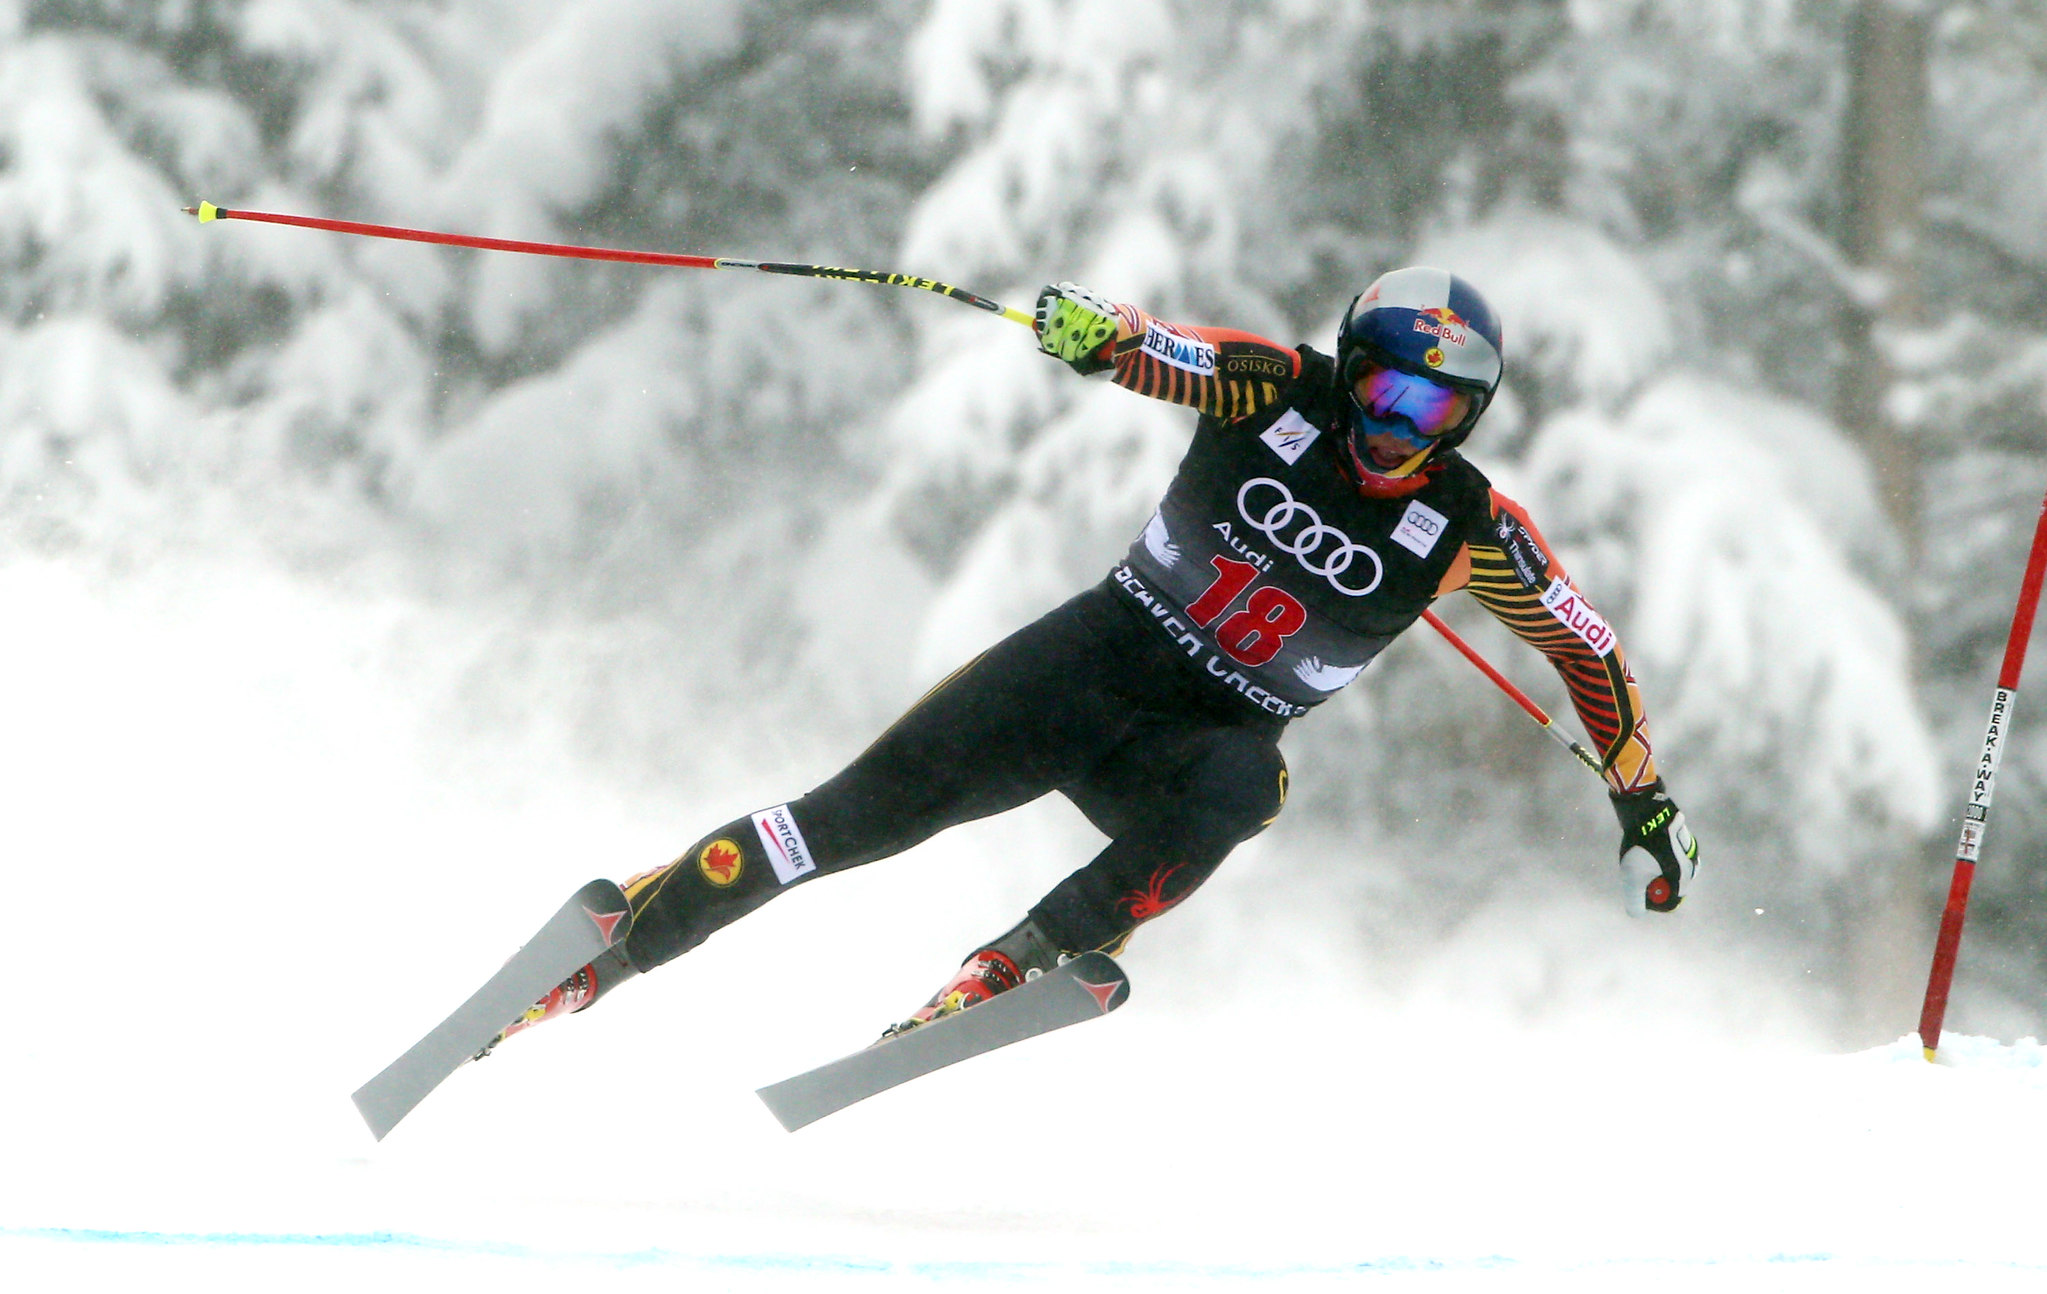 Erik Guay in action in the downhill at the FIS Alpine World Cup in Beaver Creek, USA